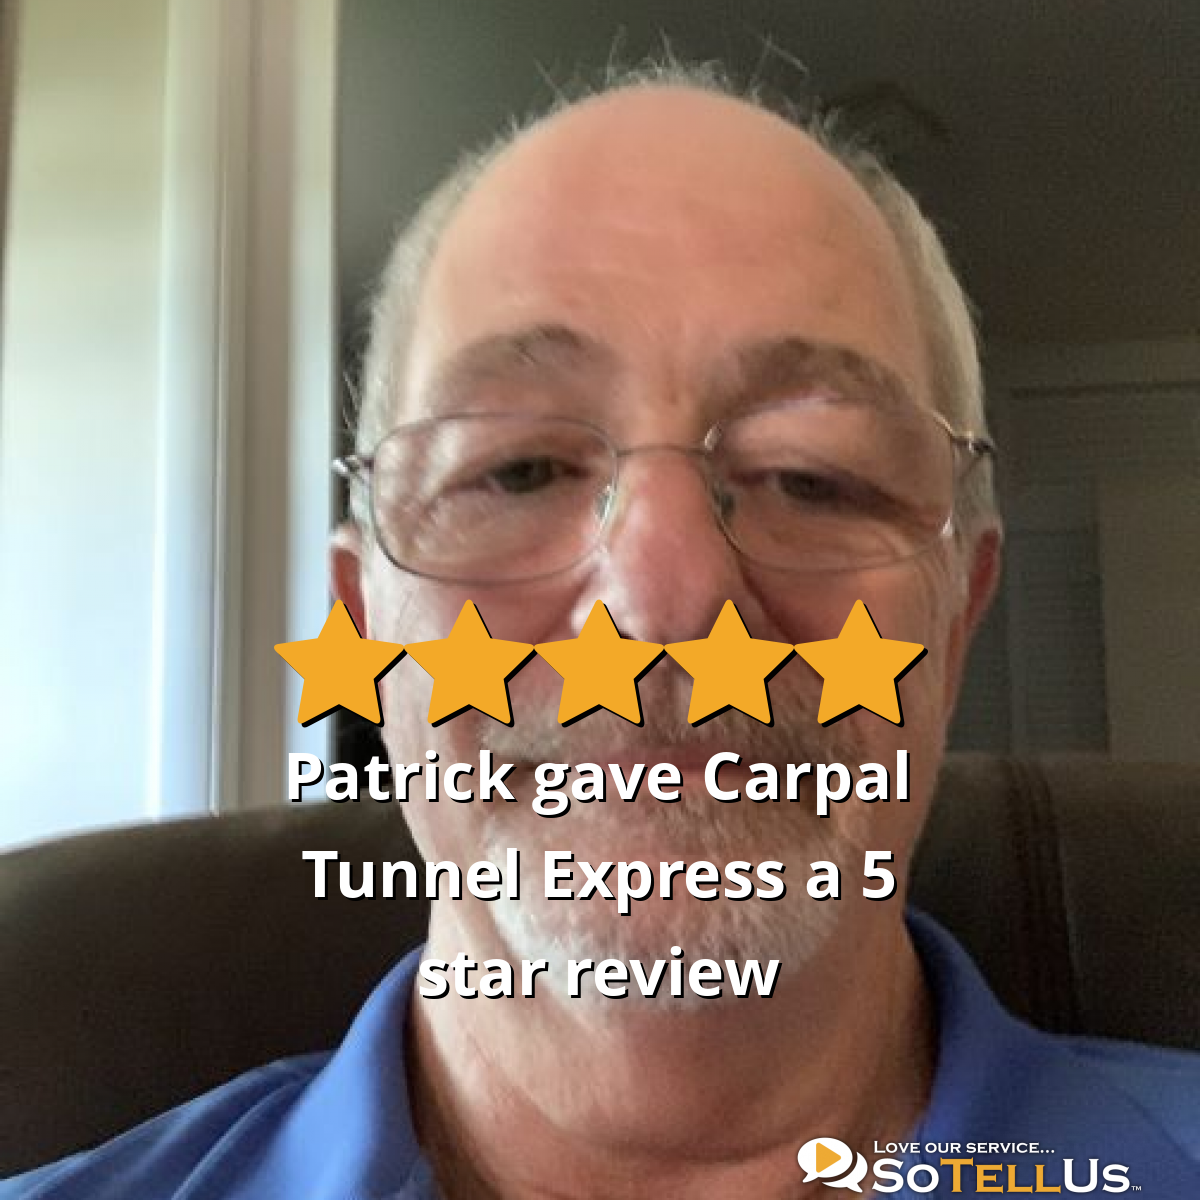 Patrick D gave Carpal Tunnel Express a 5 star review ...